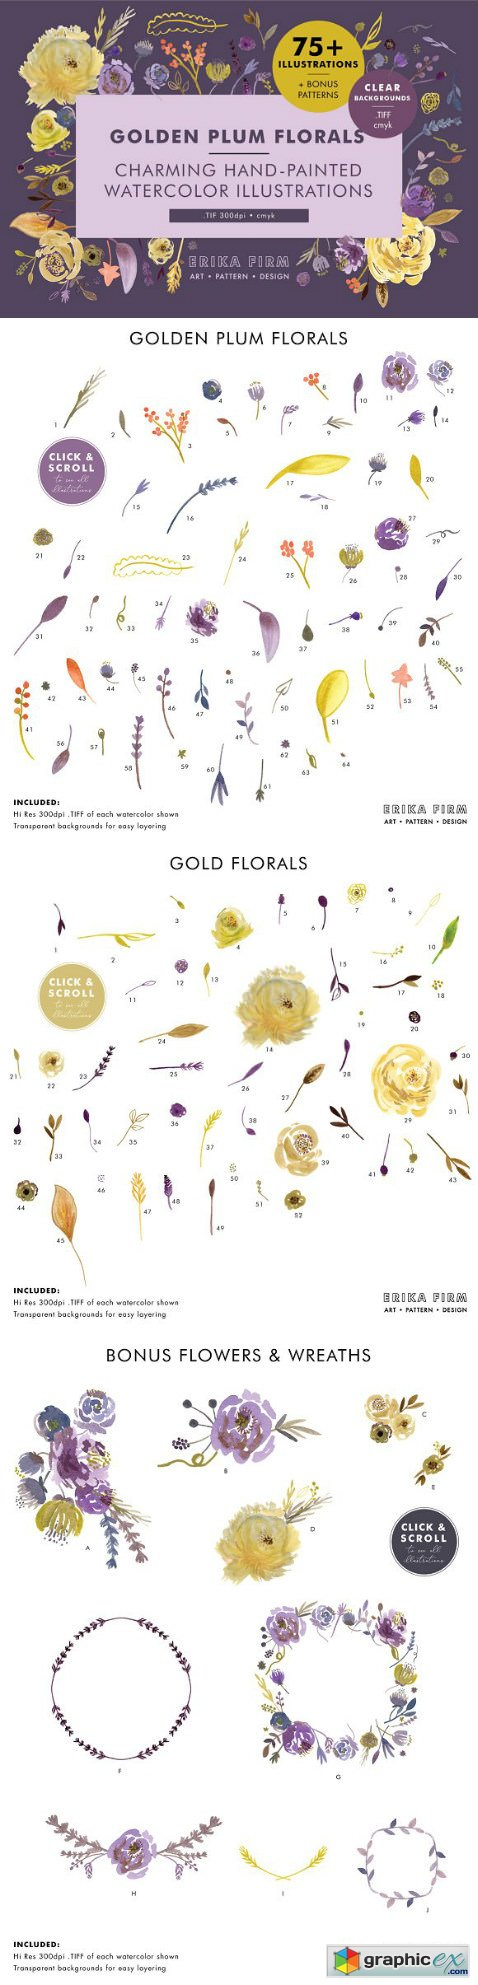 Golden Plum Floral Watercolors